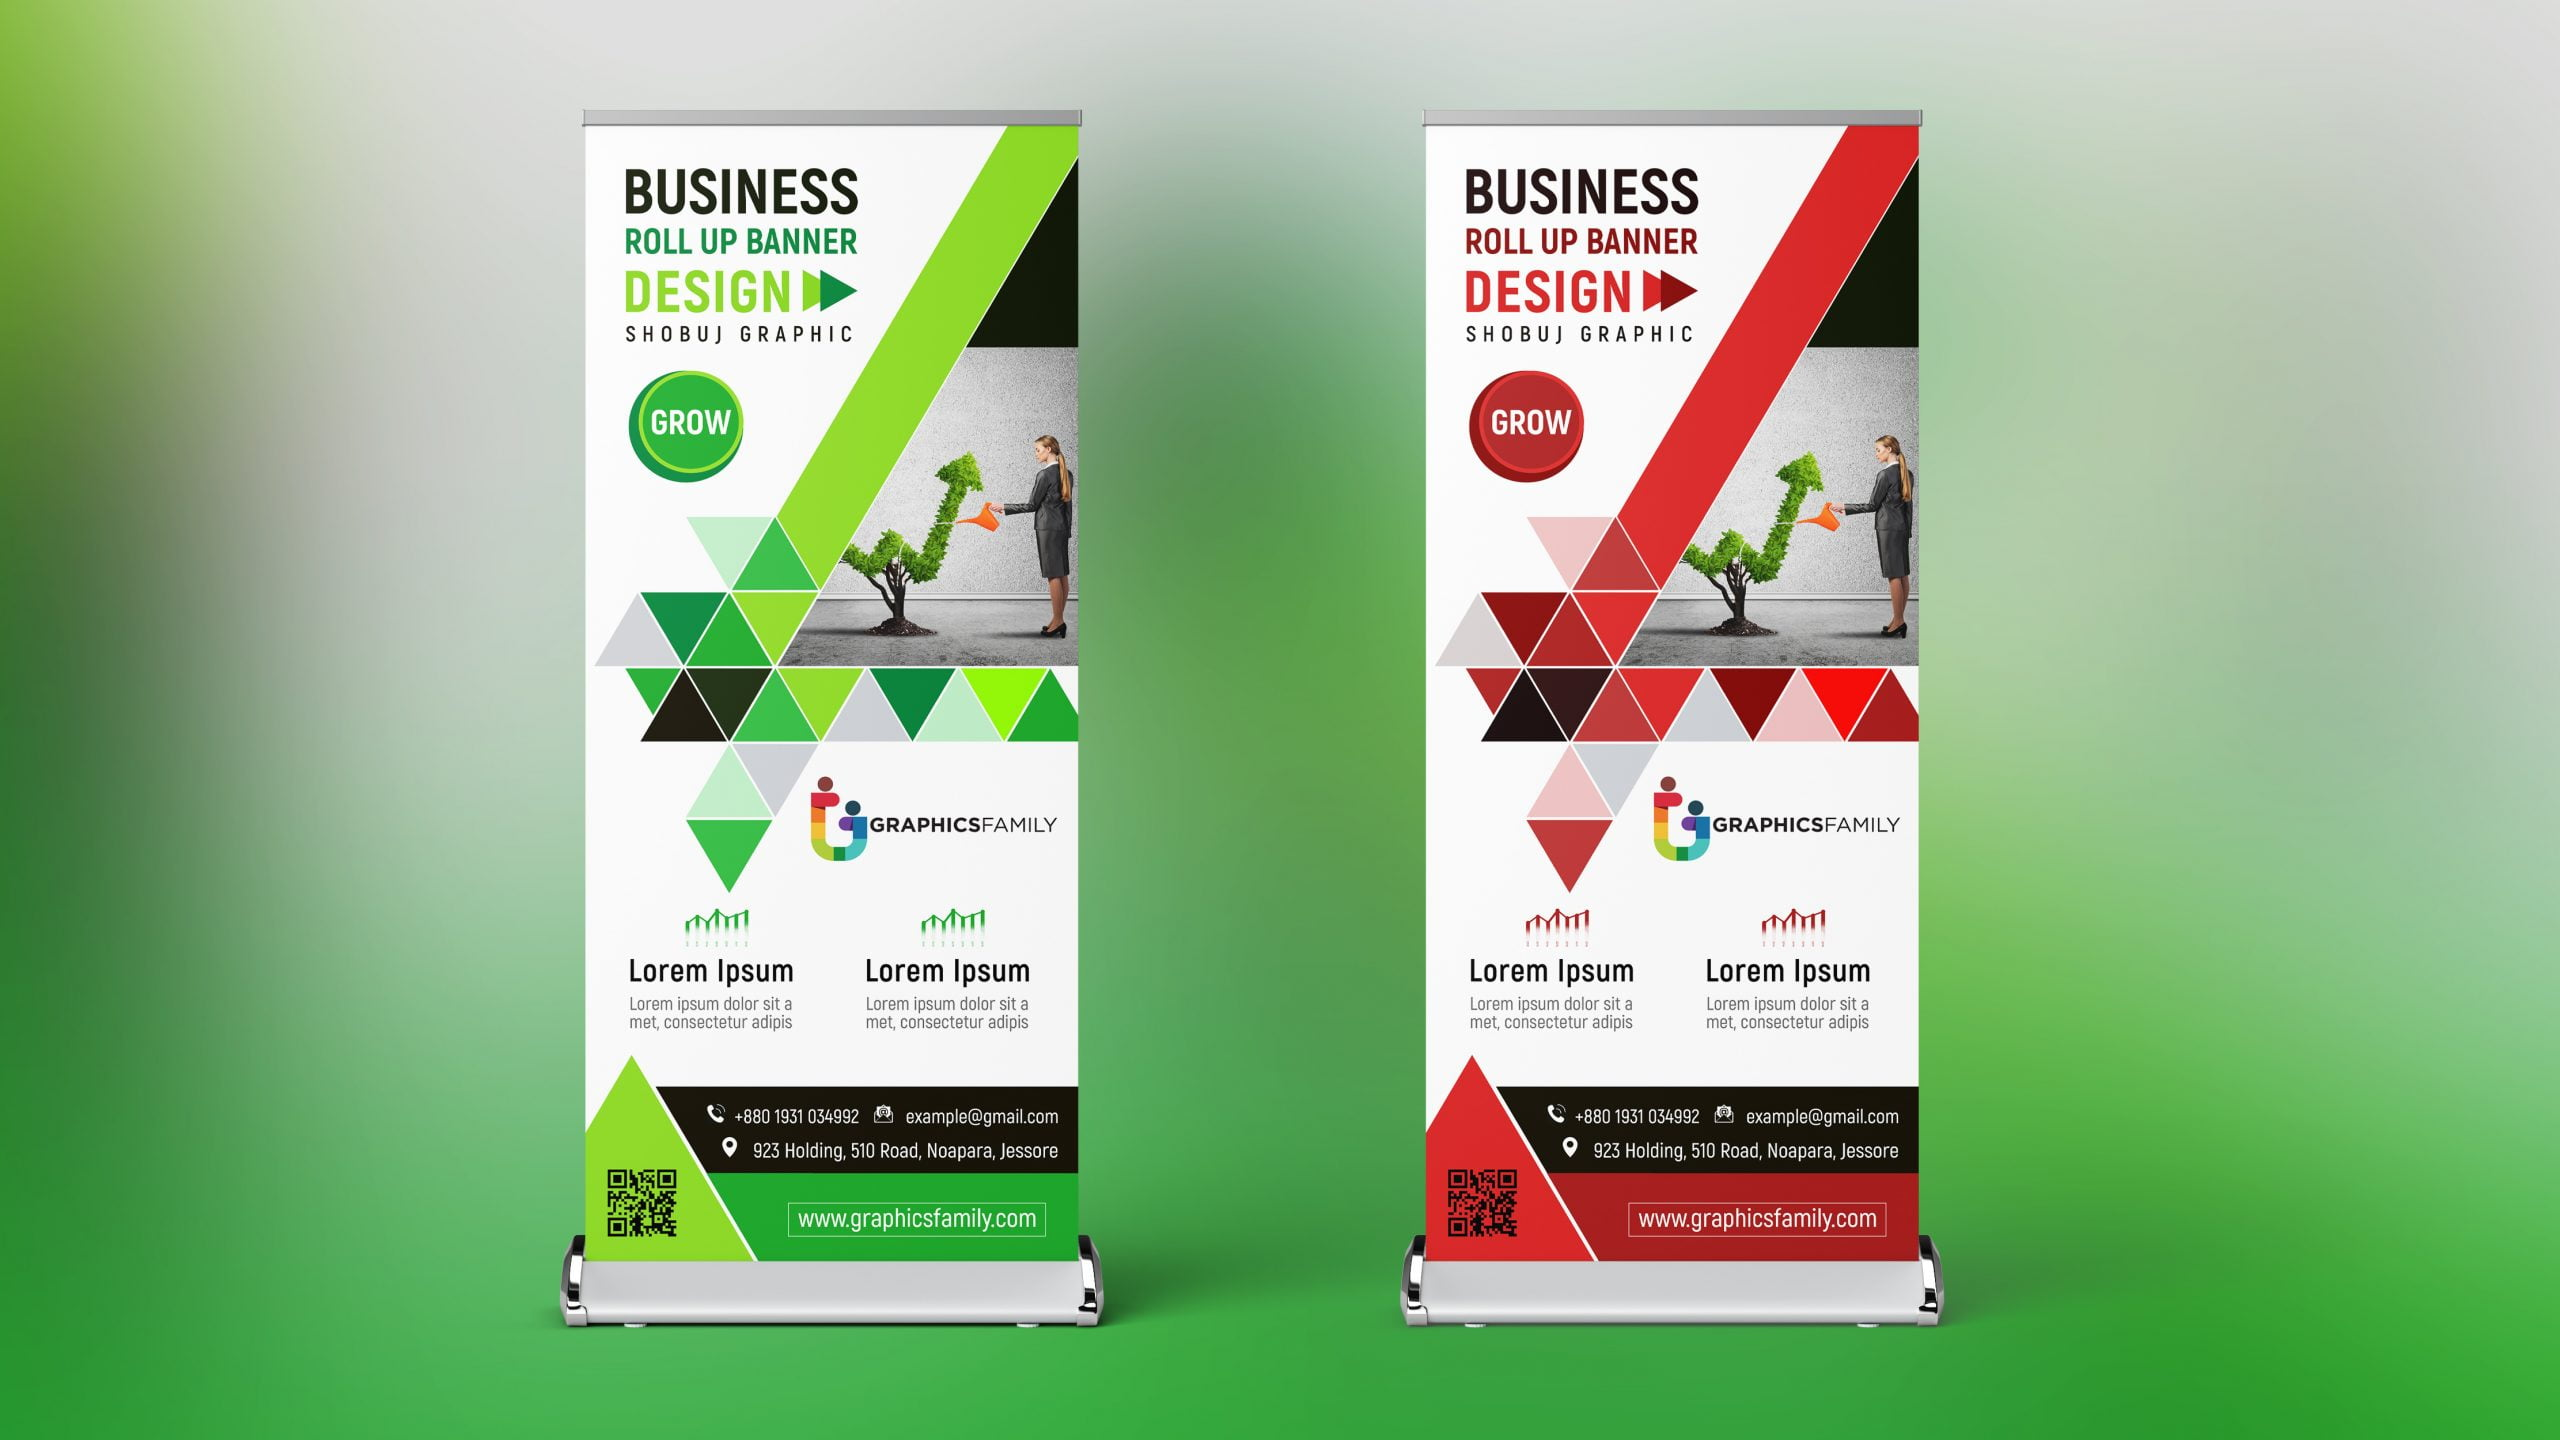 Modern-Professional-Business-Roll-Up-Banner-Design-Download